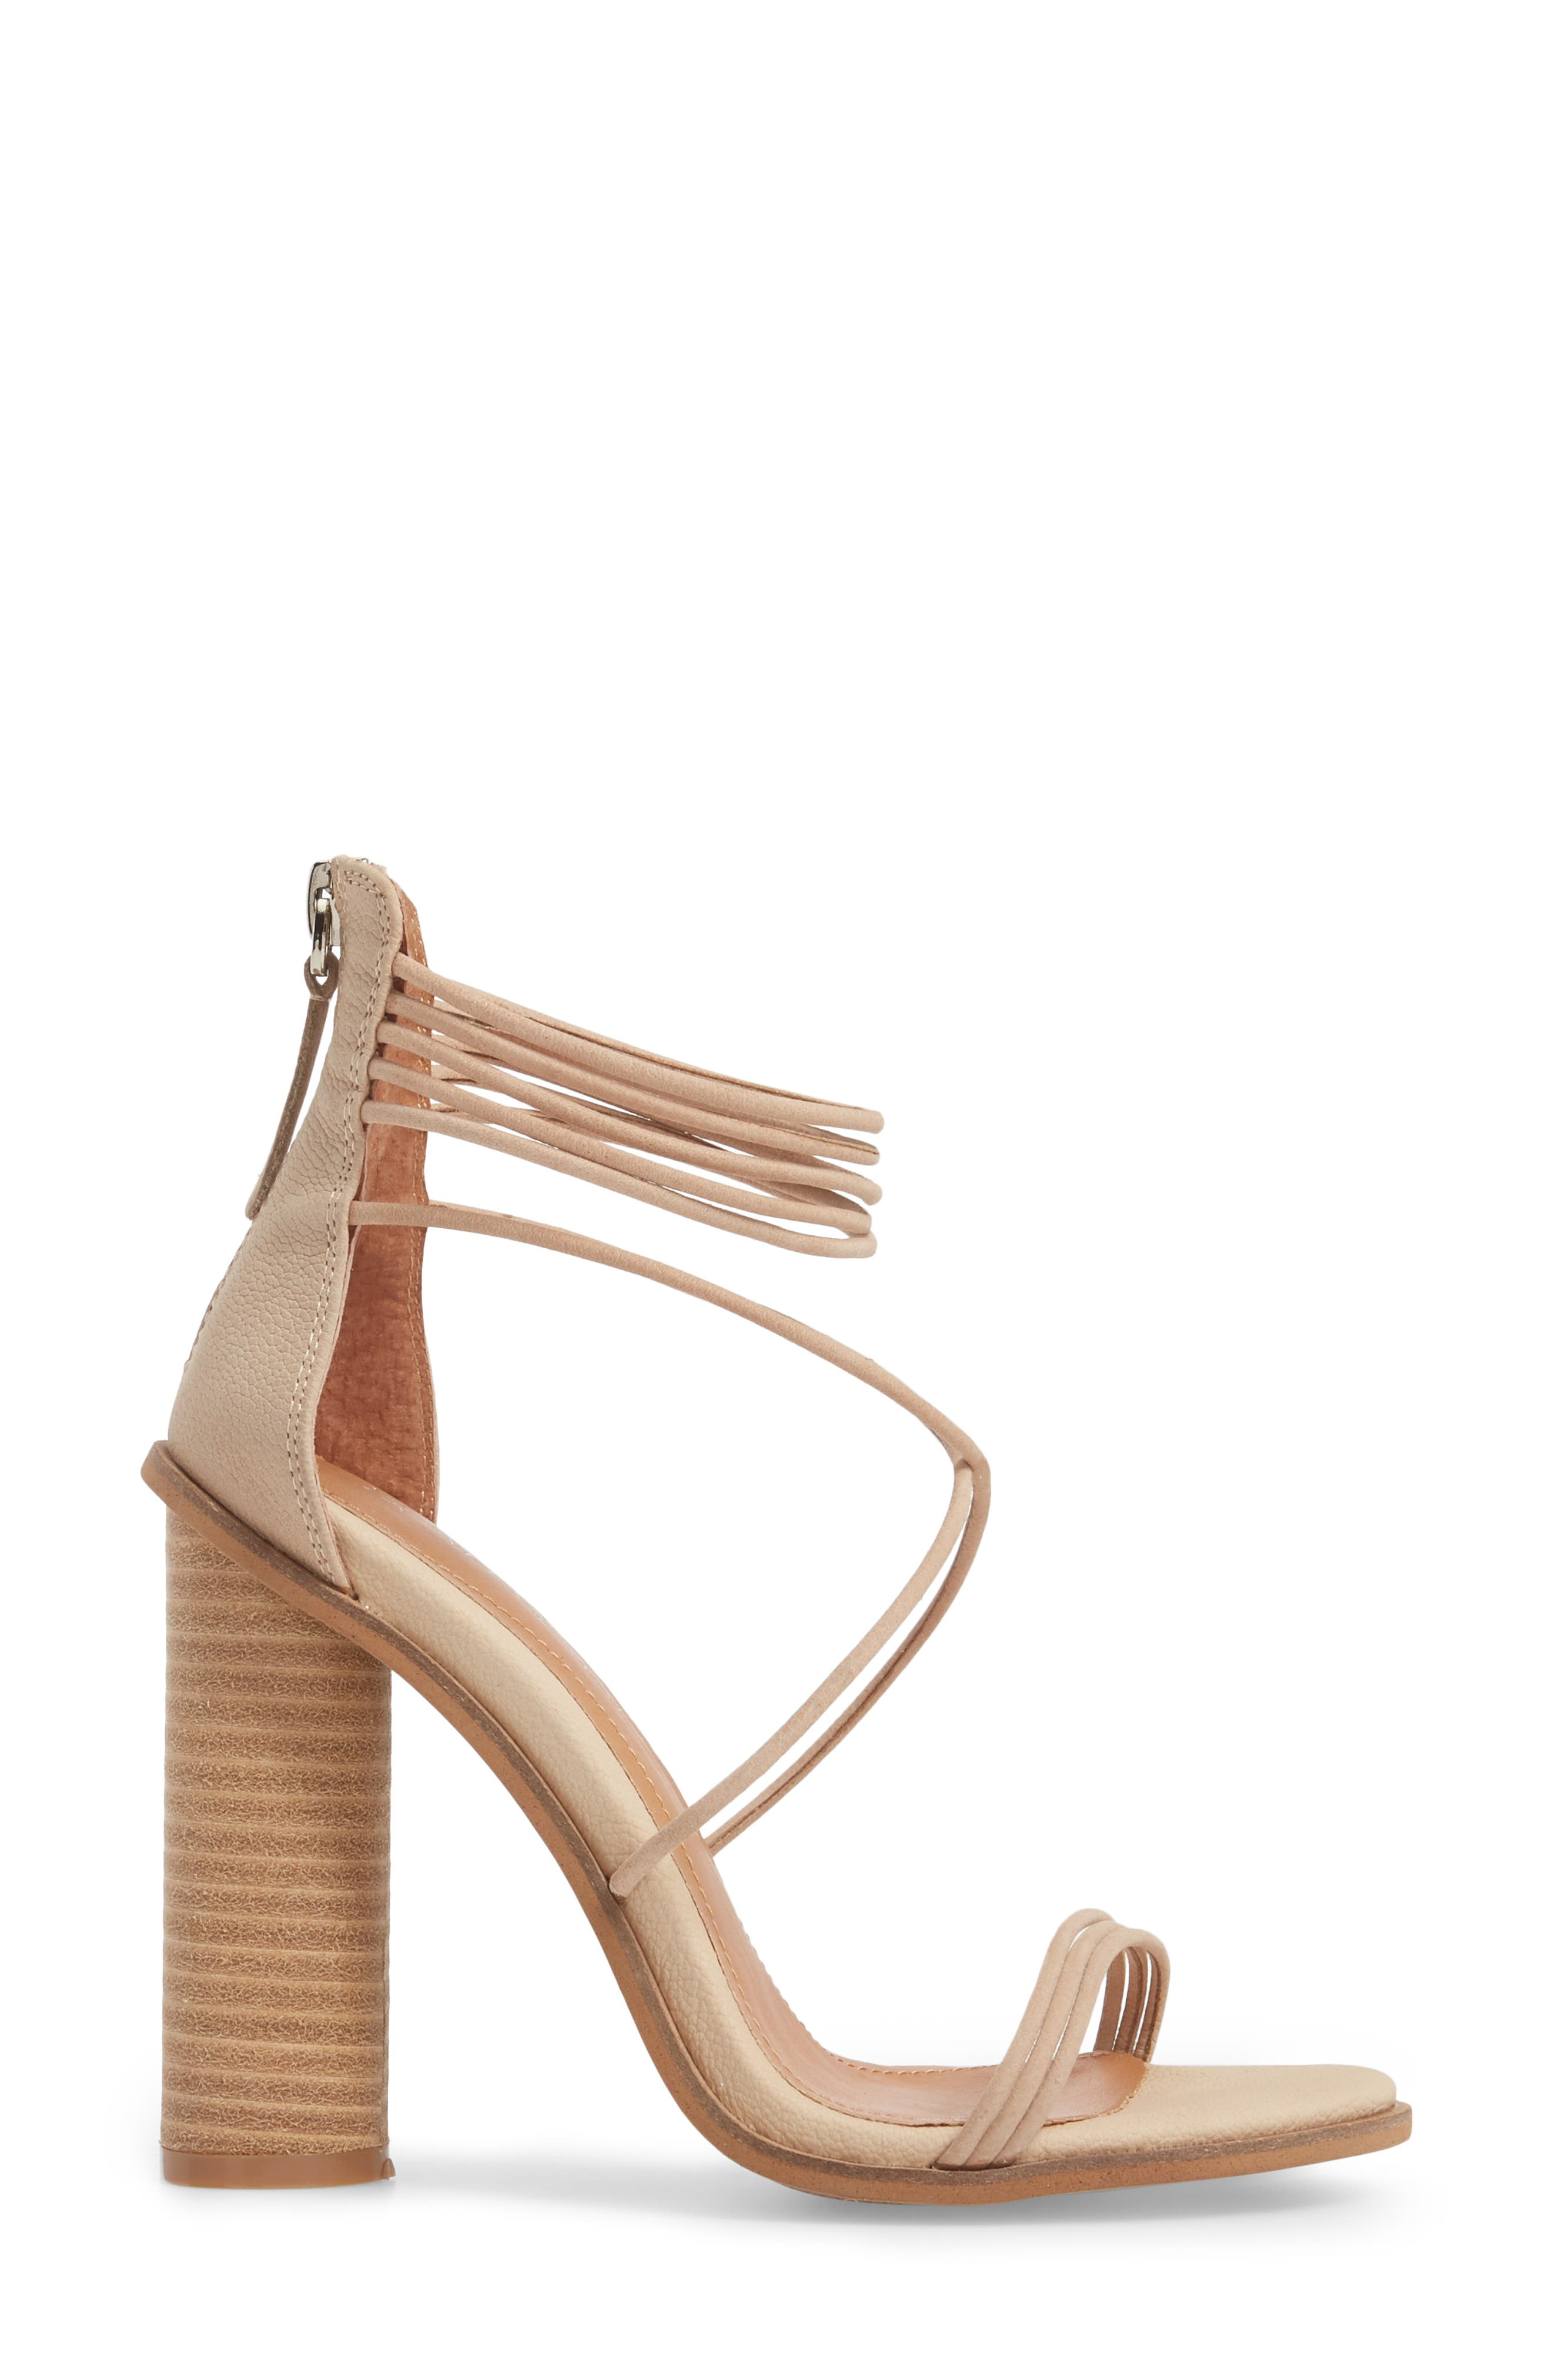 Aflux Tall Strappy Sandal,                             Alternate thumbnail 3, color,                             NATURAL LEATHER